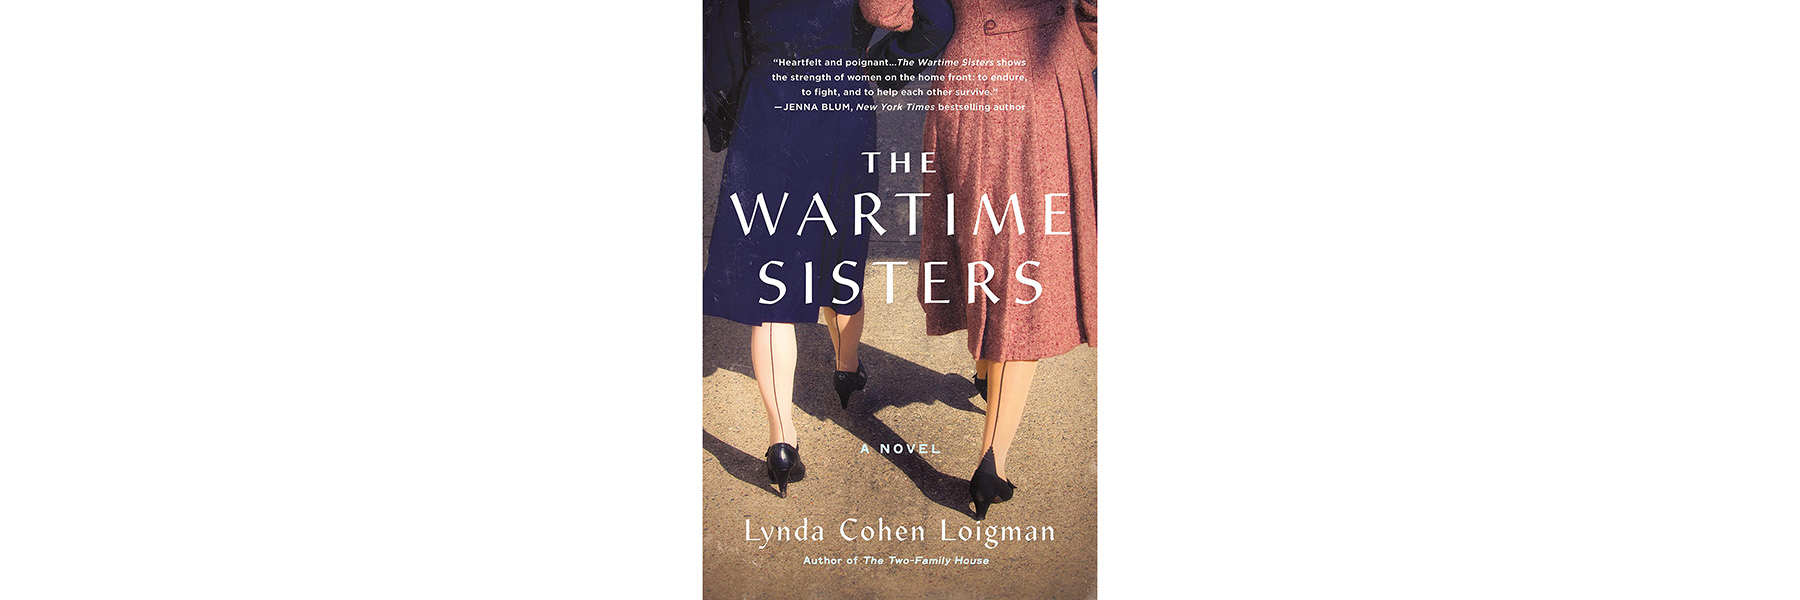 Cover of The Wartime Sisters, by Lynda Cohen Loigman